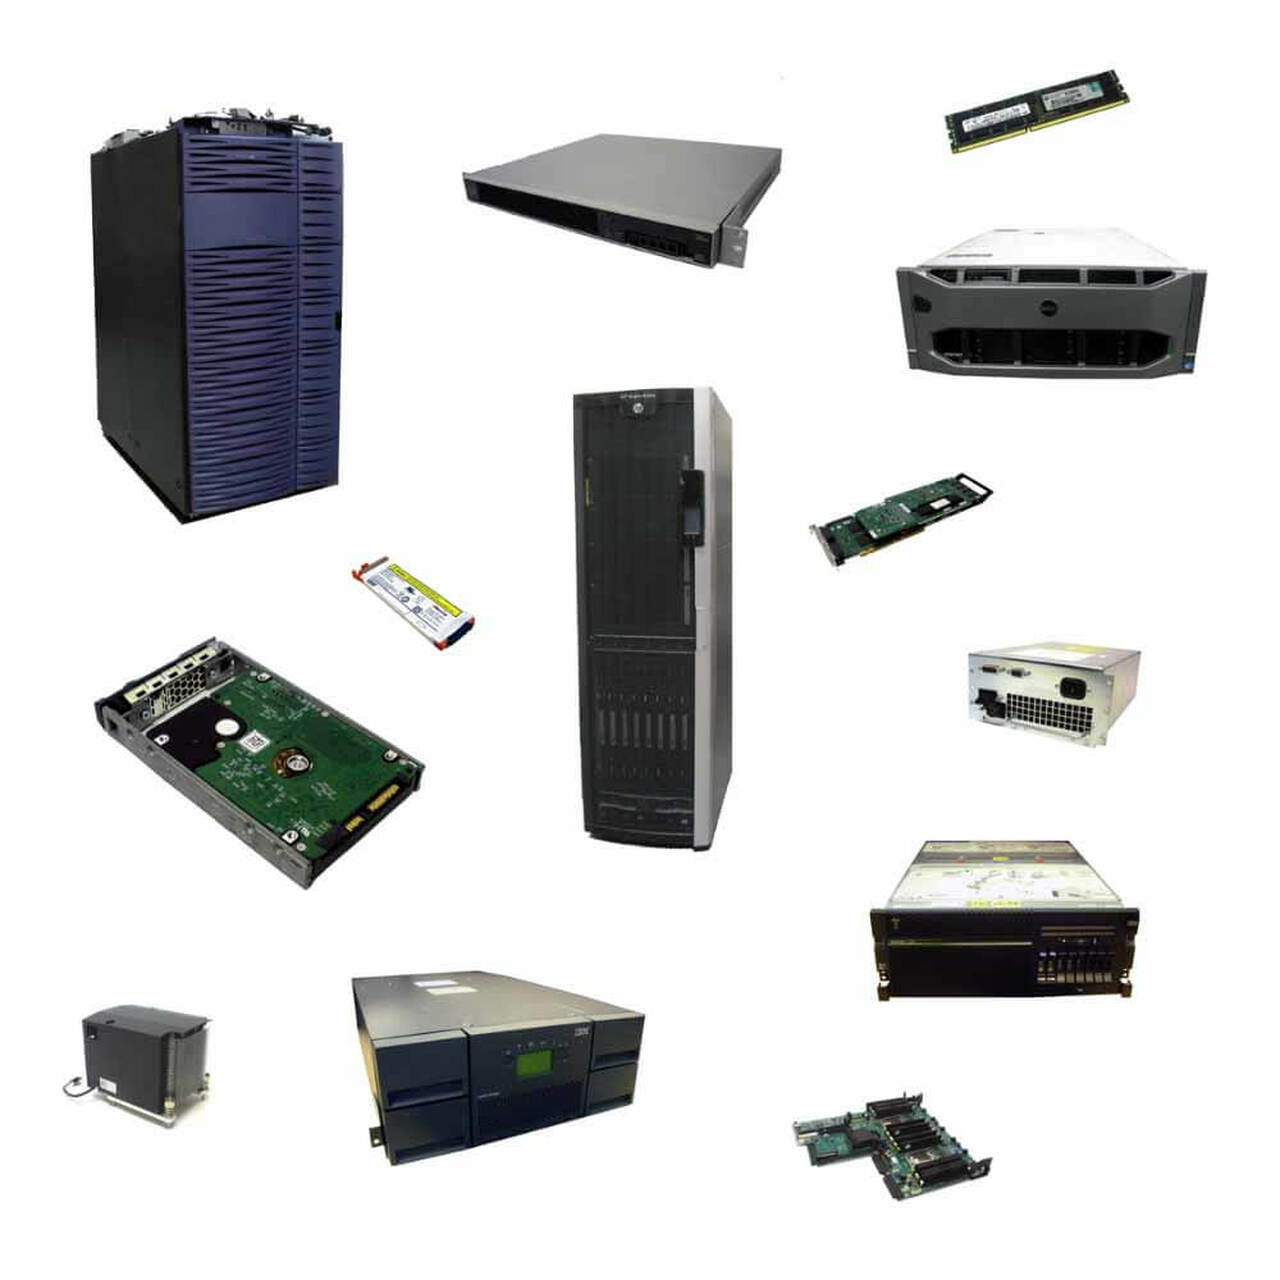 Buy & save on refurbished server spare parts from your trusted partners at Flagship Technologies.